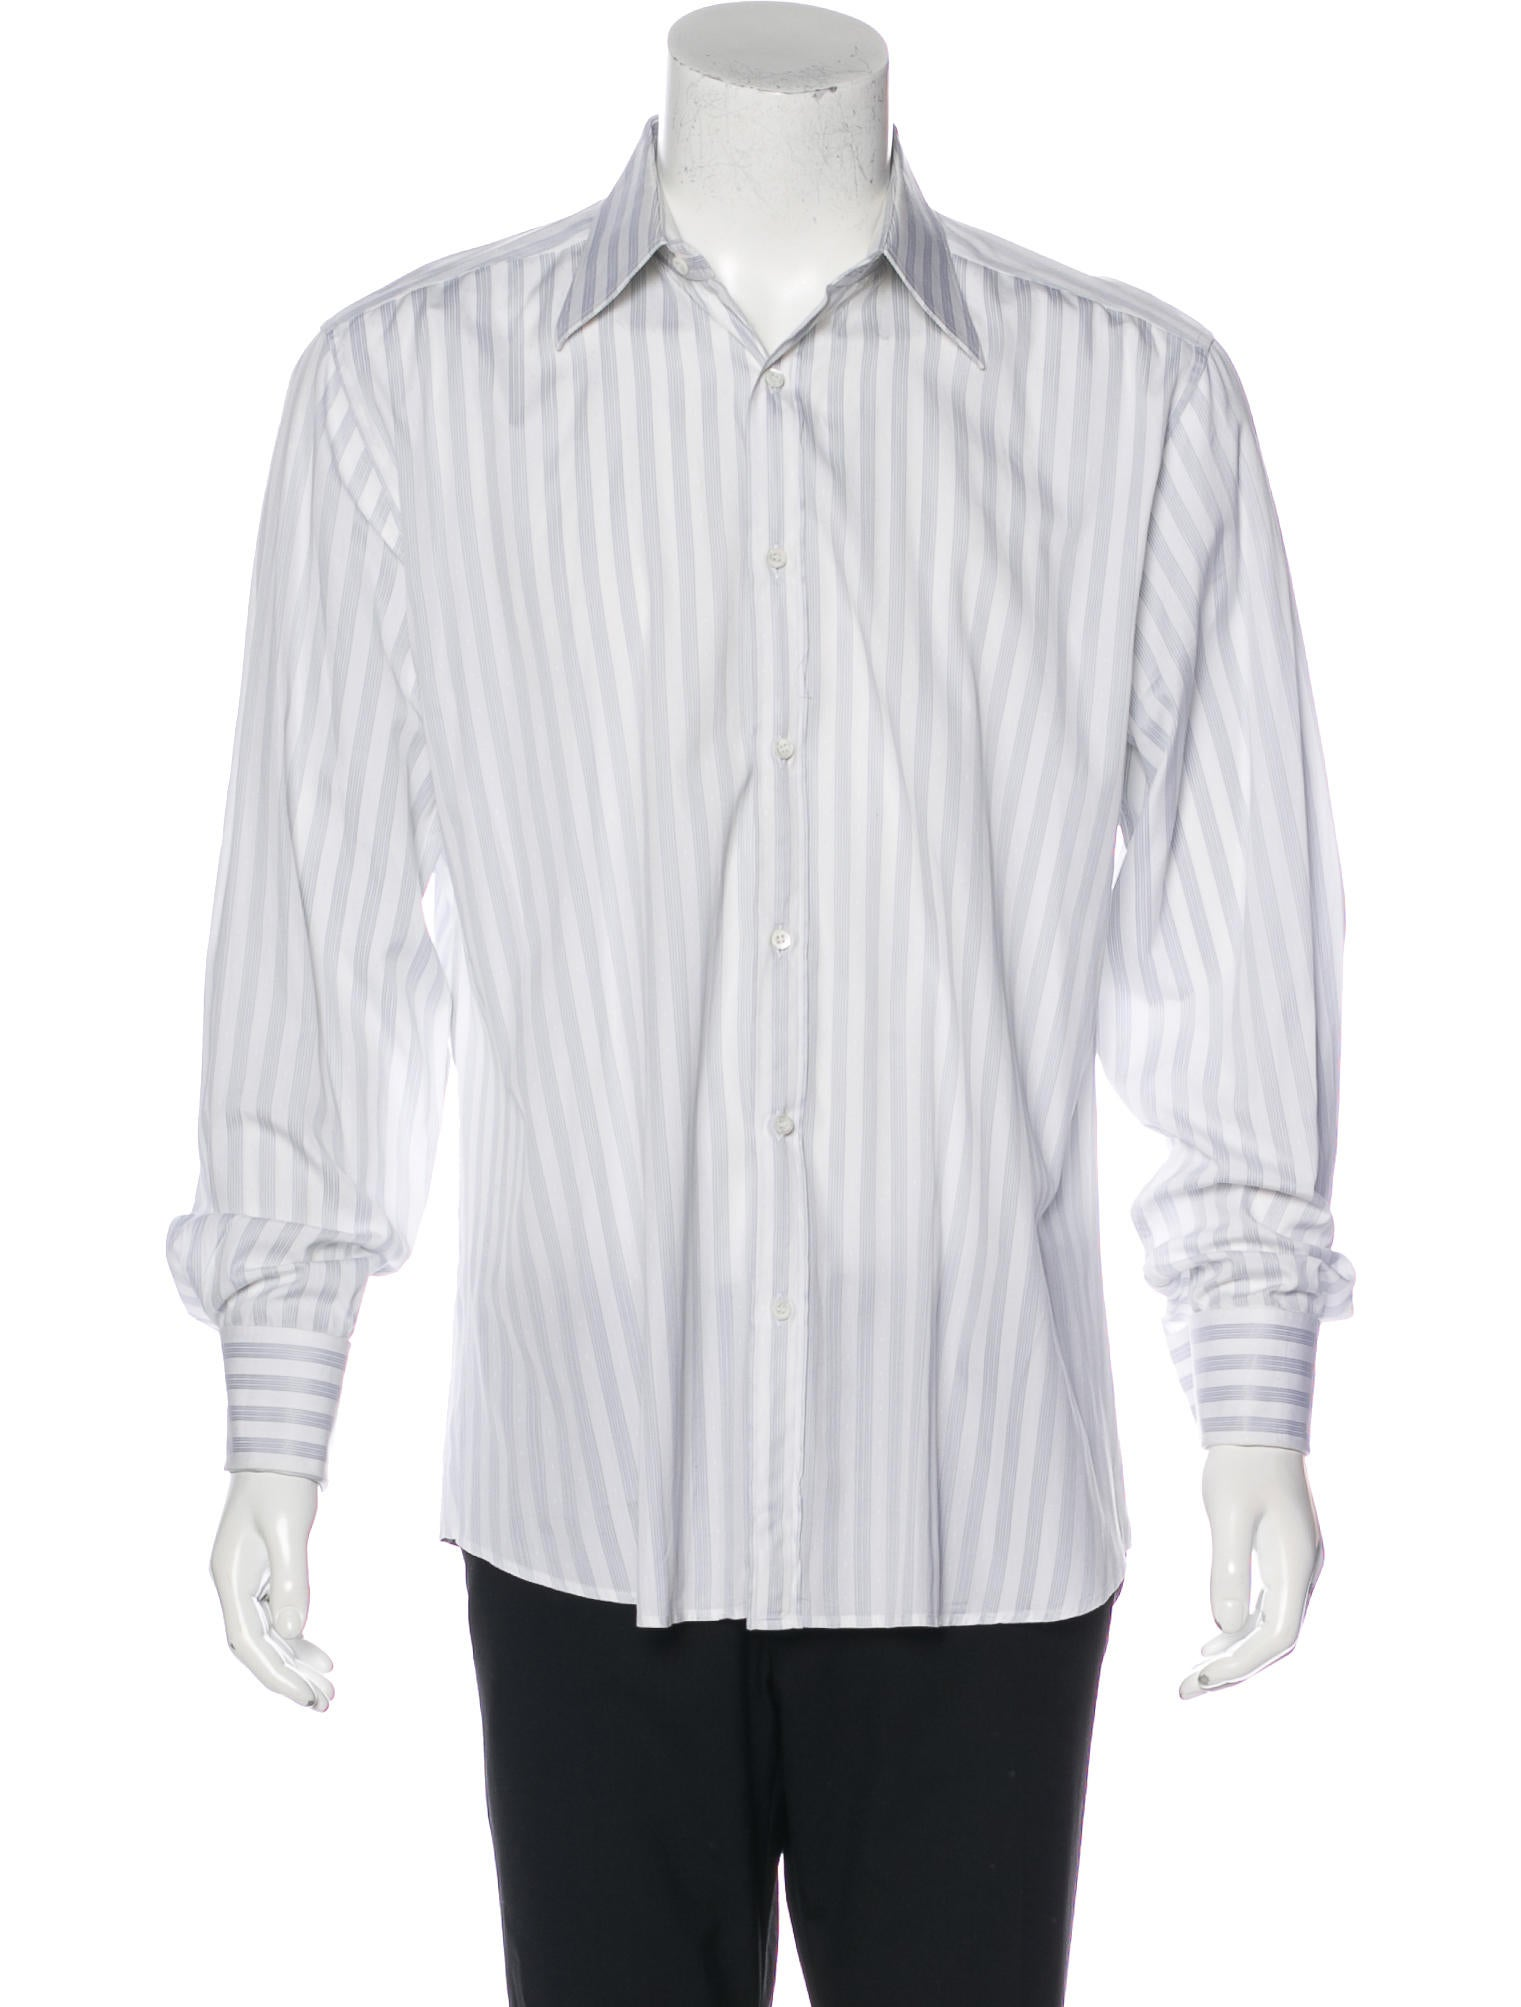 gucci striped french cuff shirt clothing guc166999